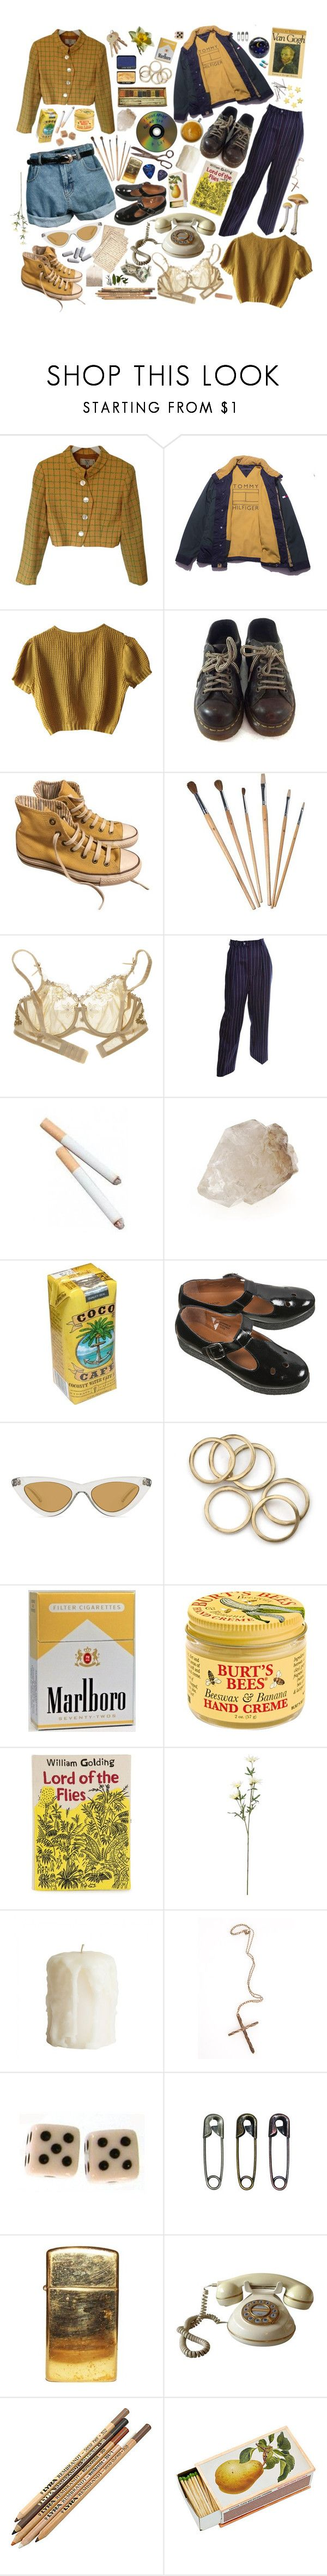 """""""living off of coffee"""" by ohhoneyy ❤ liked on Polyvore featuring Valentino, Schumacher, Dr. Martens, Converse, Cotton Club, Yves Saint Laurent, Retrò, Topshop, Le Specs and Burt's Bees"""